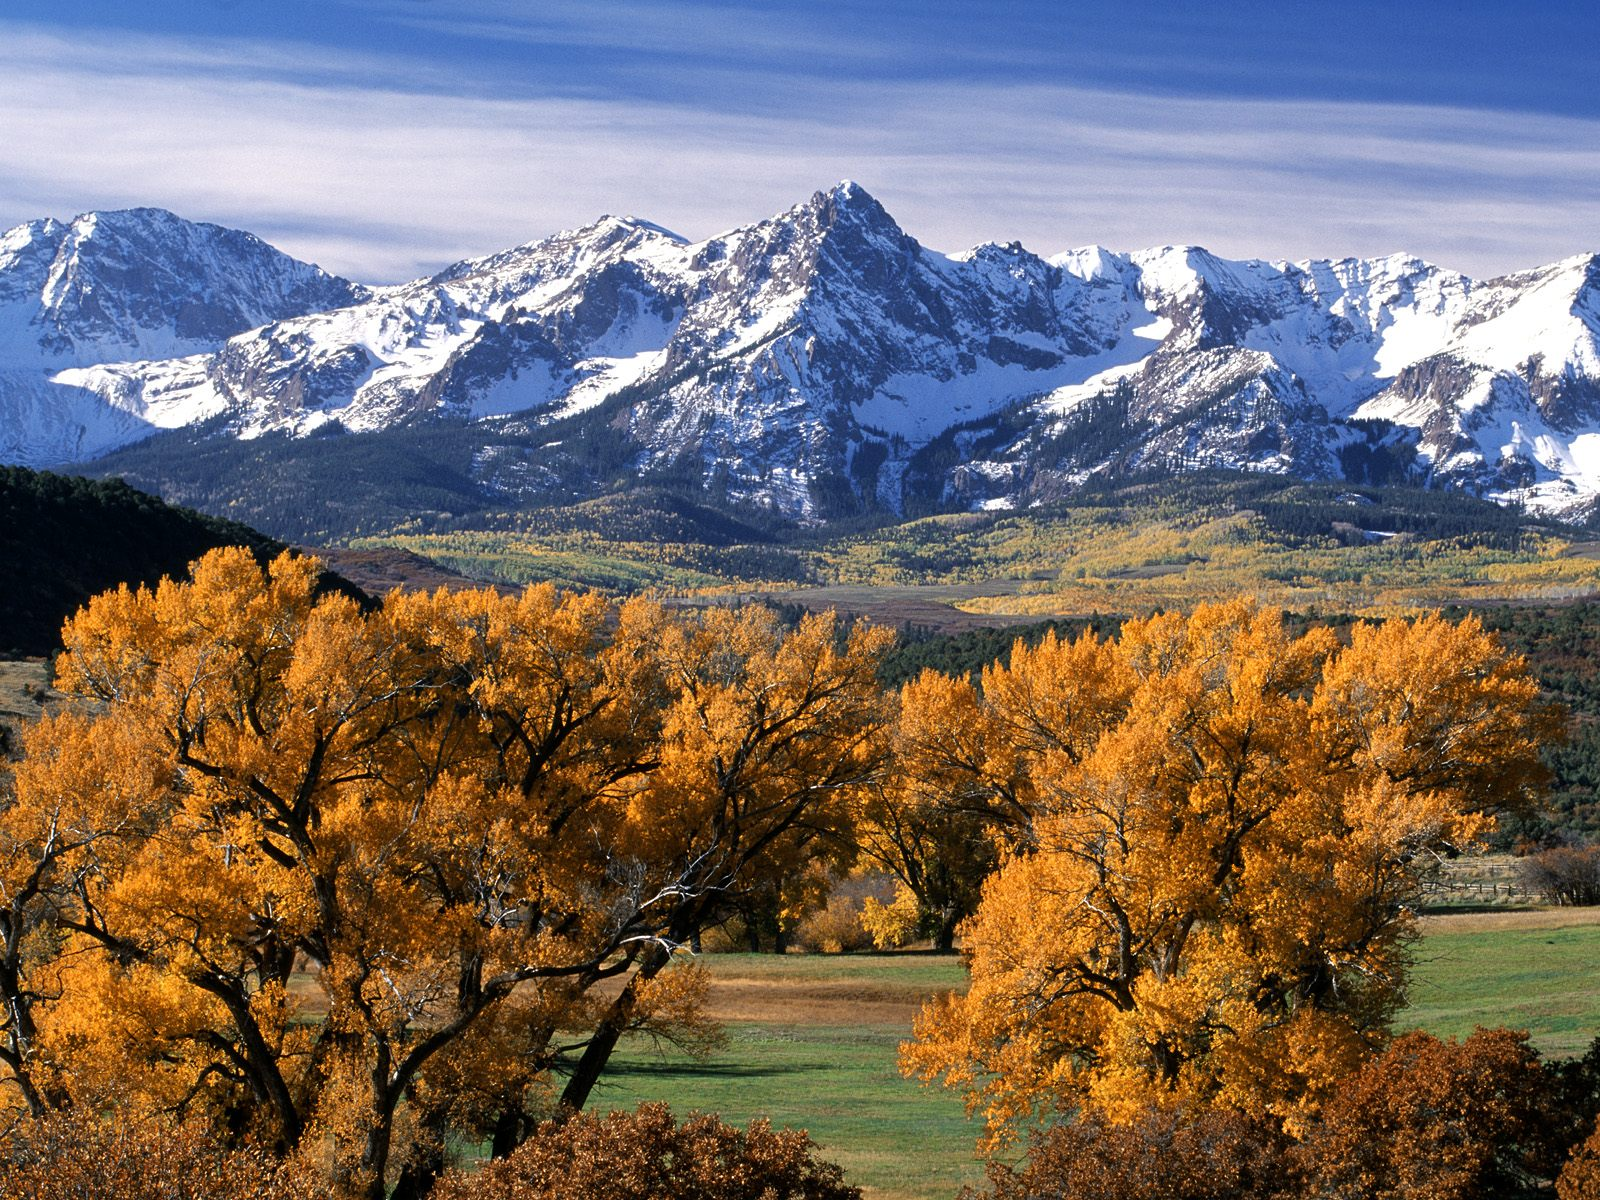 Autumn Colors Sneffels Range Colorado 1600 x 1200